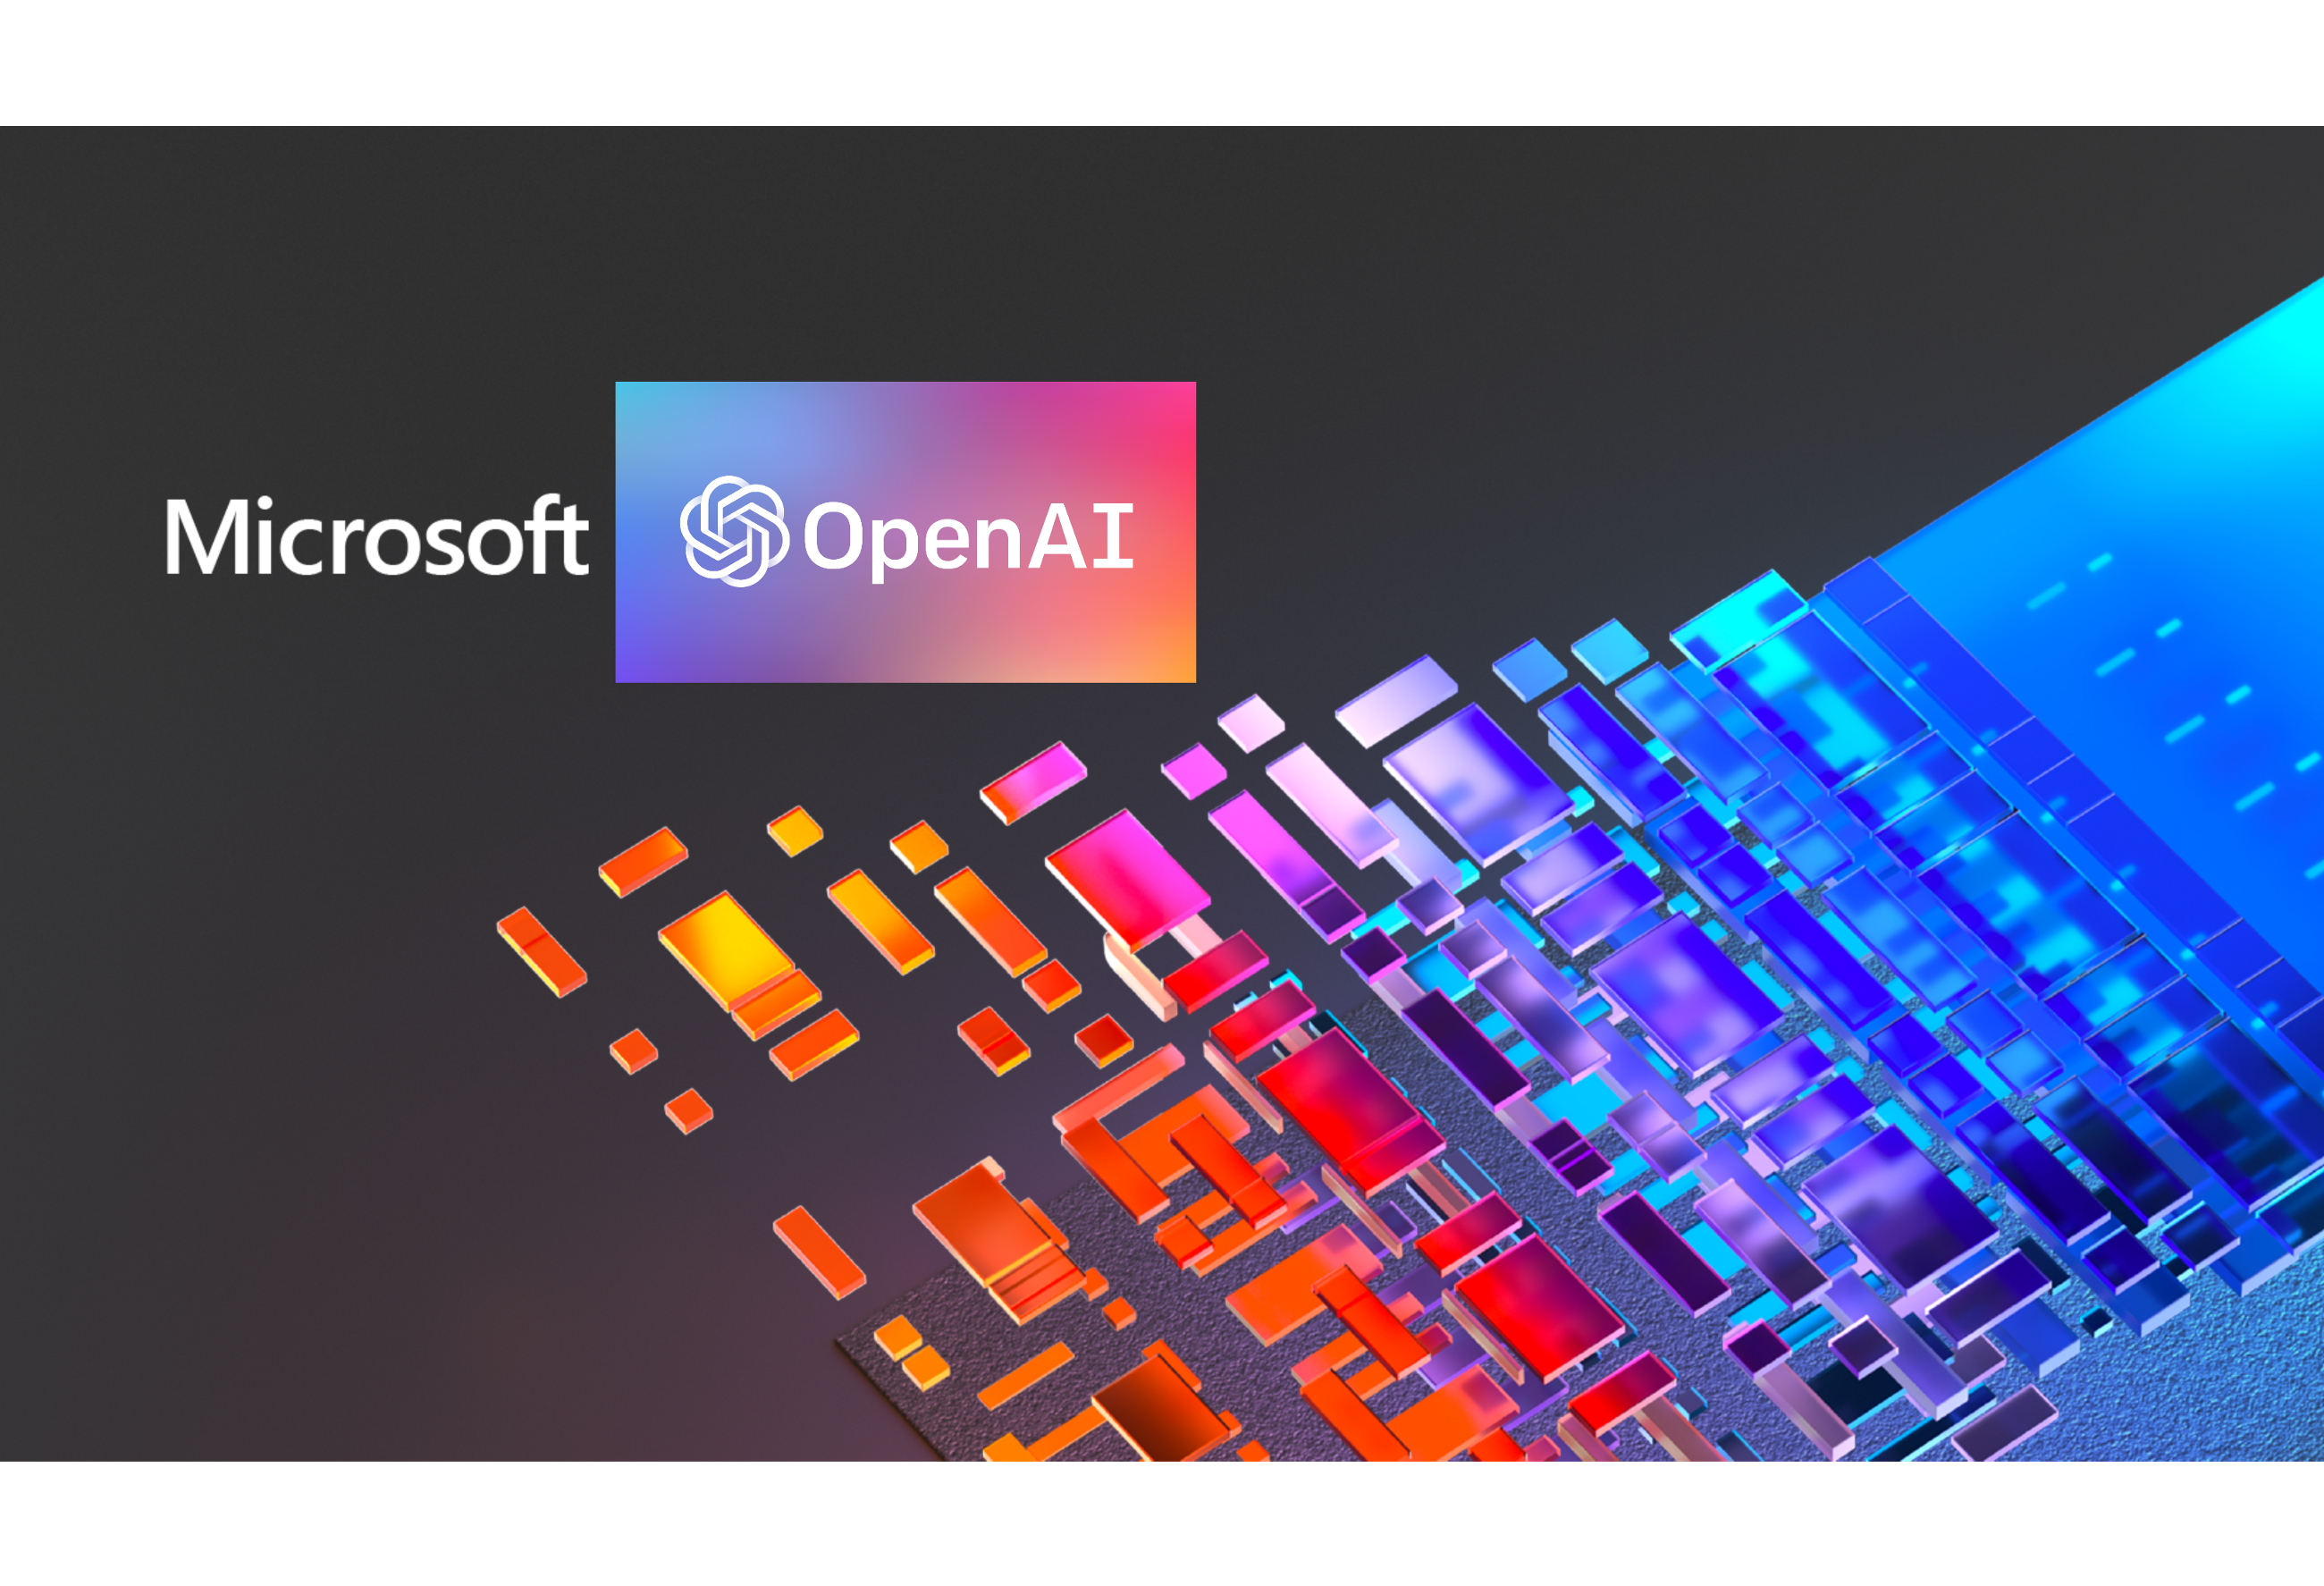 Microsoft Gets Exclusive License for OpenAI's GPT-3 Language Model